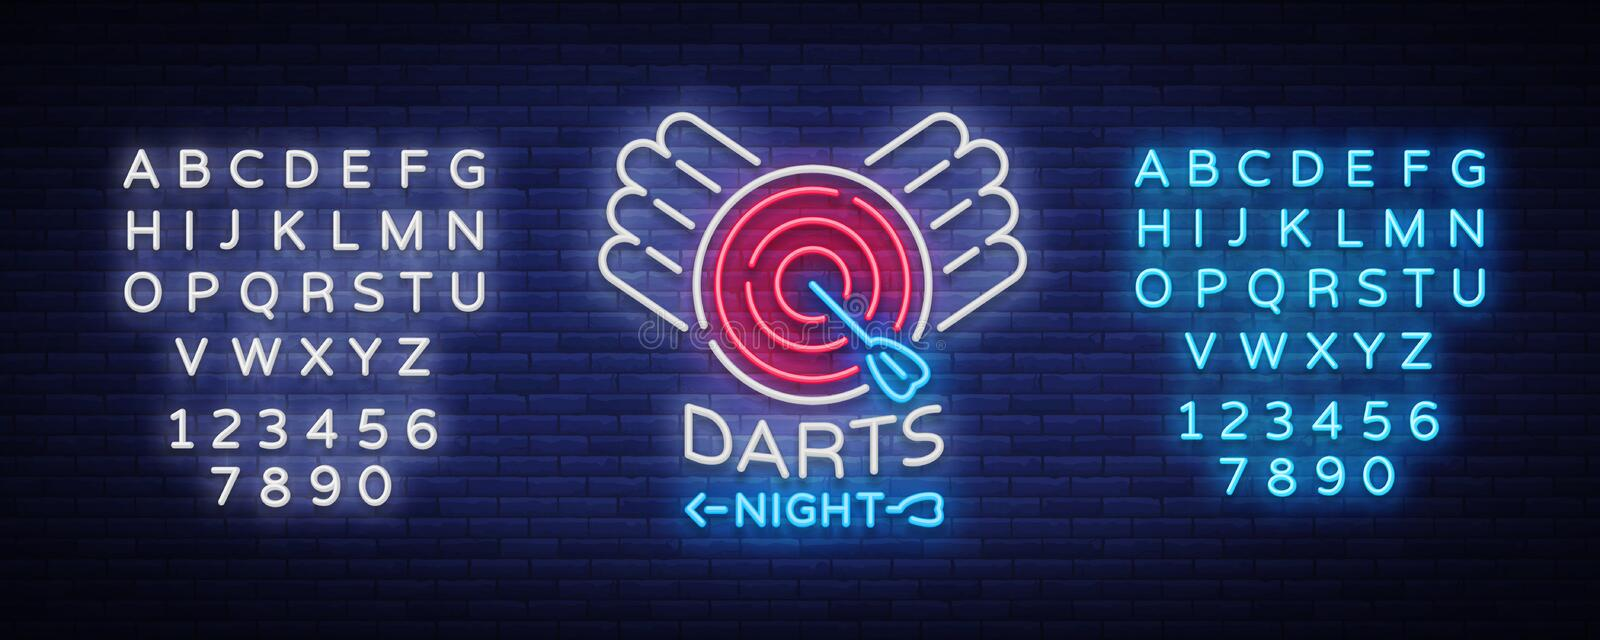 Darts neon sign. Vector illustration. Bright nightly Darts advertising, neon logo, symbol, lightweight banner, design. Template for your projects. Editing text royalty free illustration